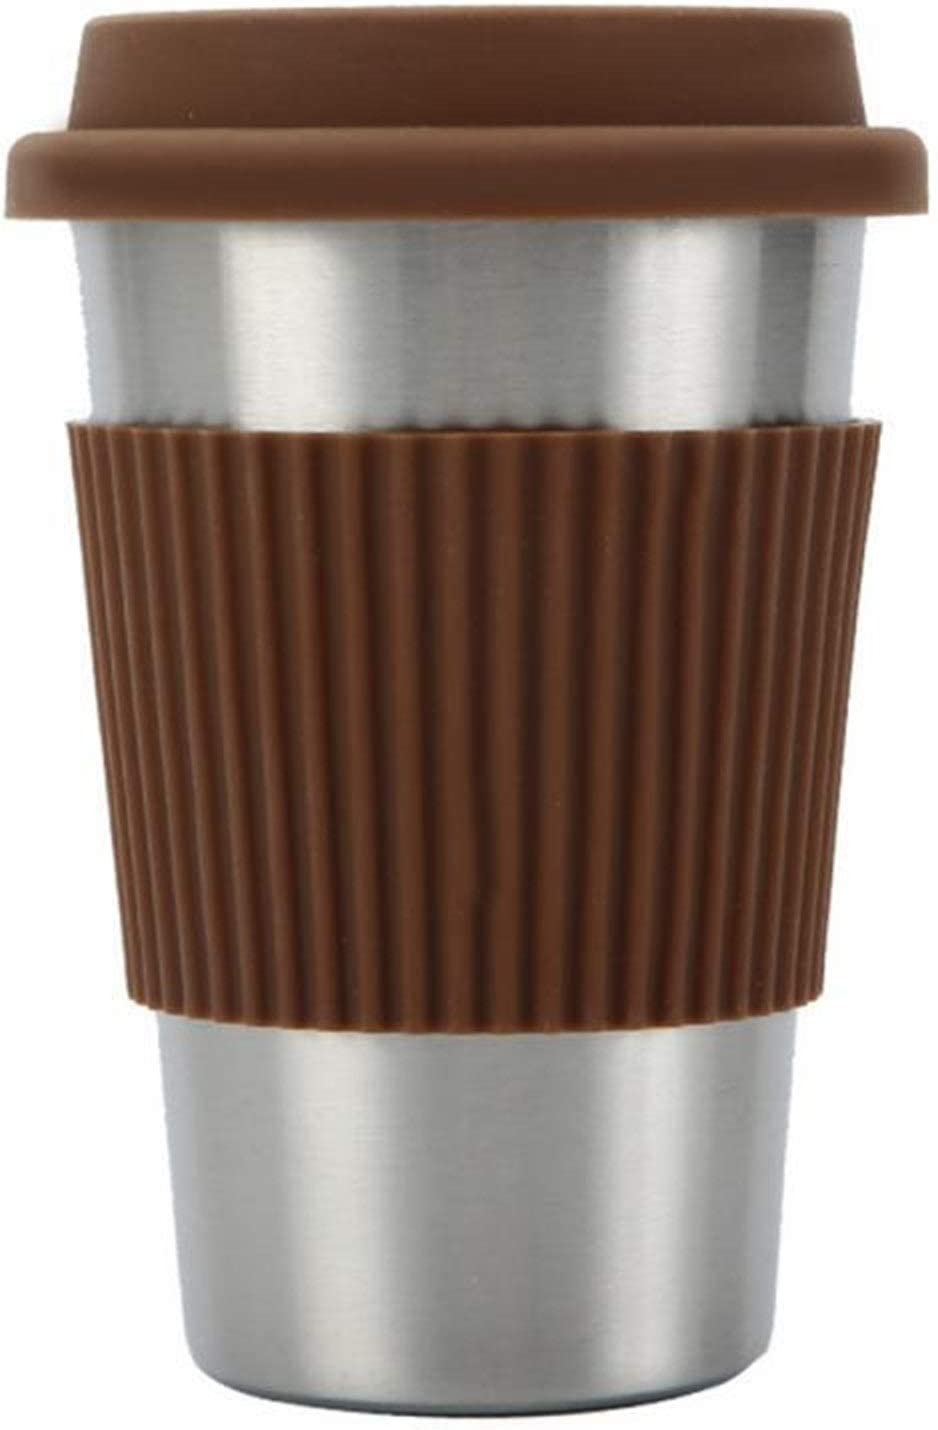 FZQSTZR Stainless Steel Max 40% OFF Coffee Cup Capacity Large Ranking integrated 1st place Portable Trave